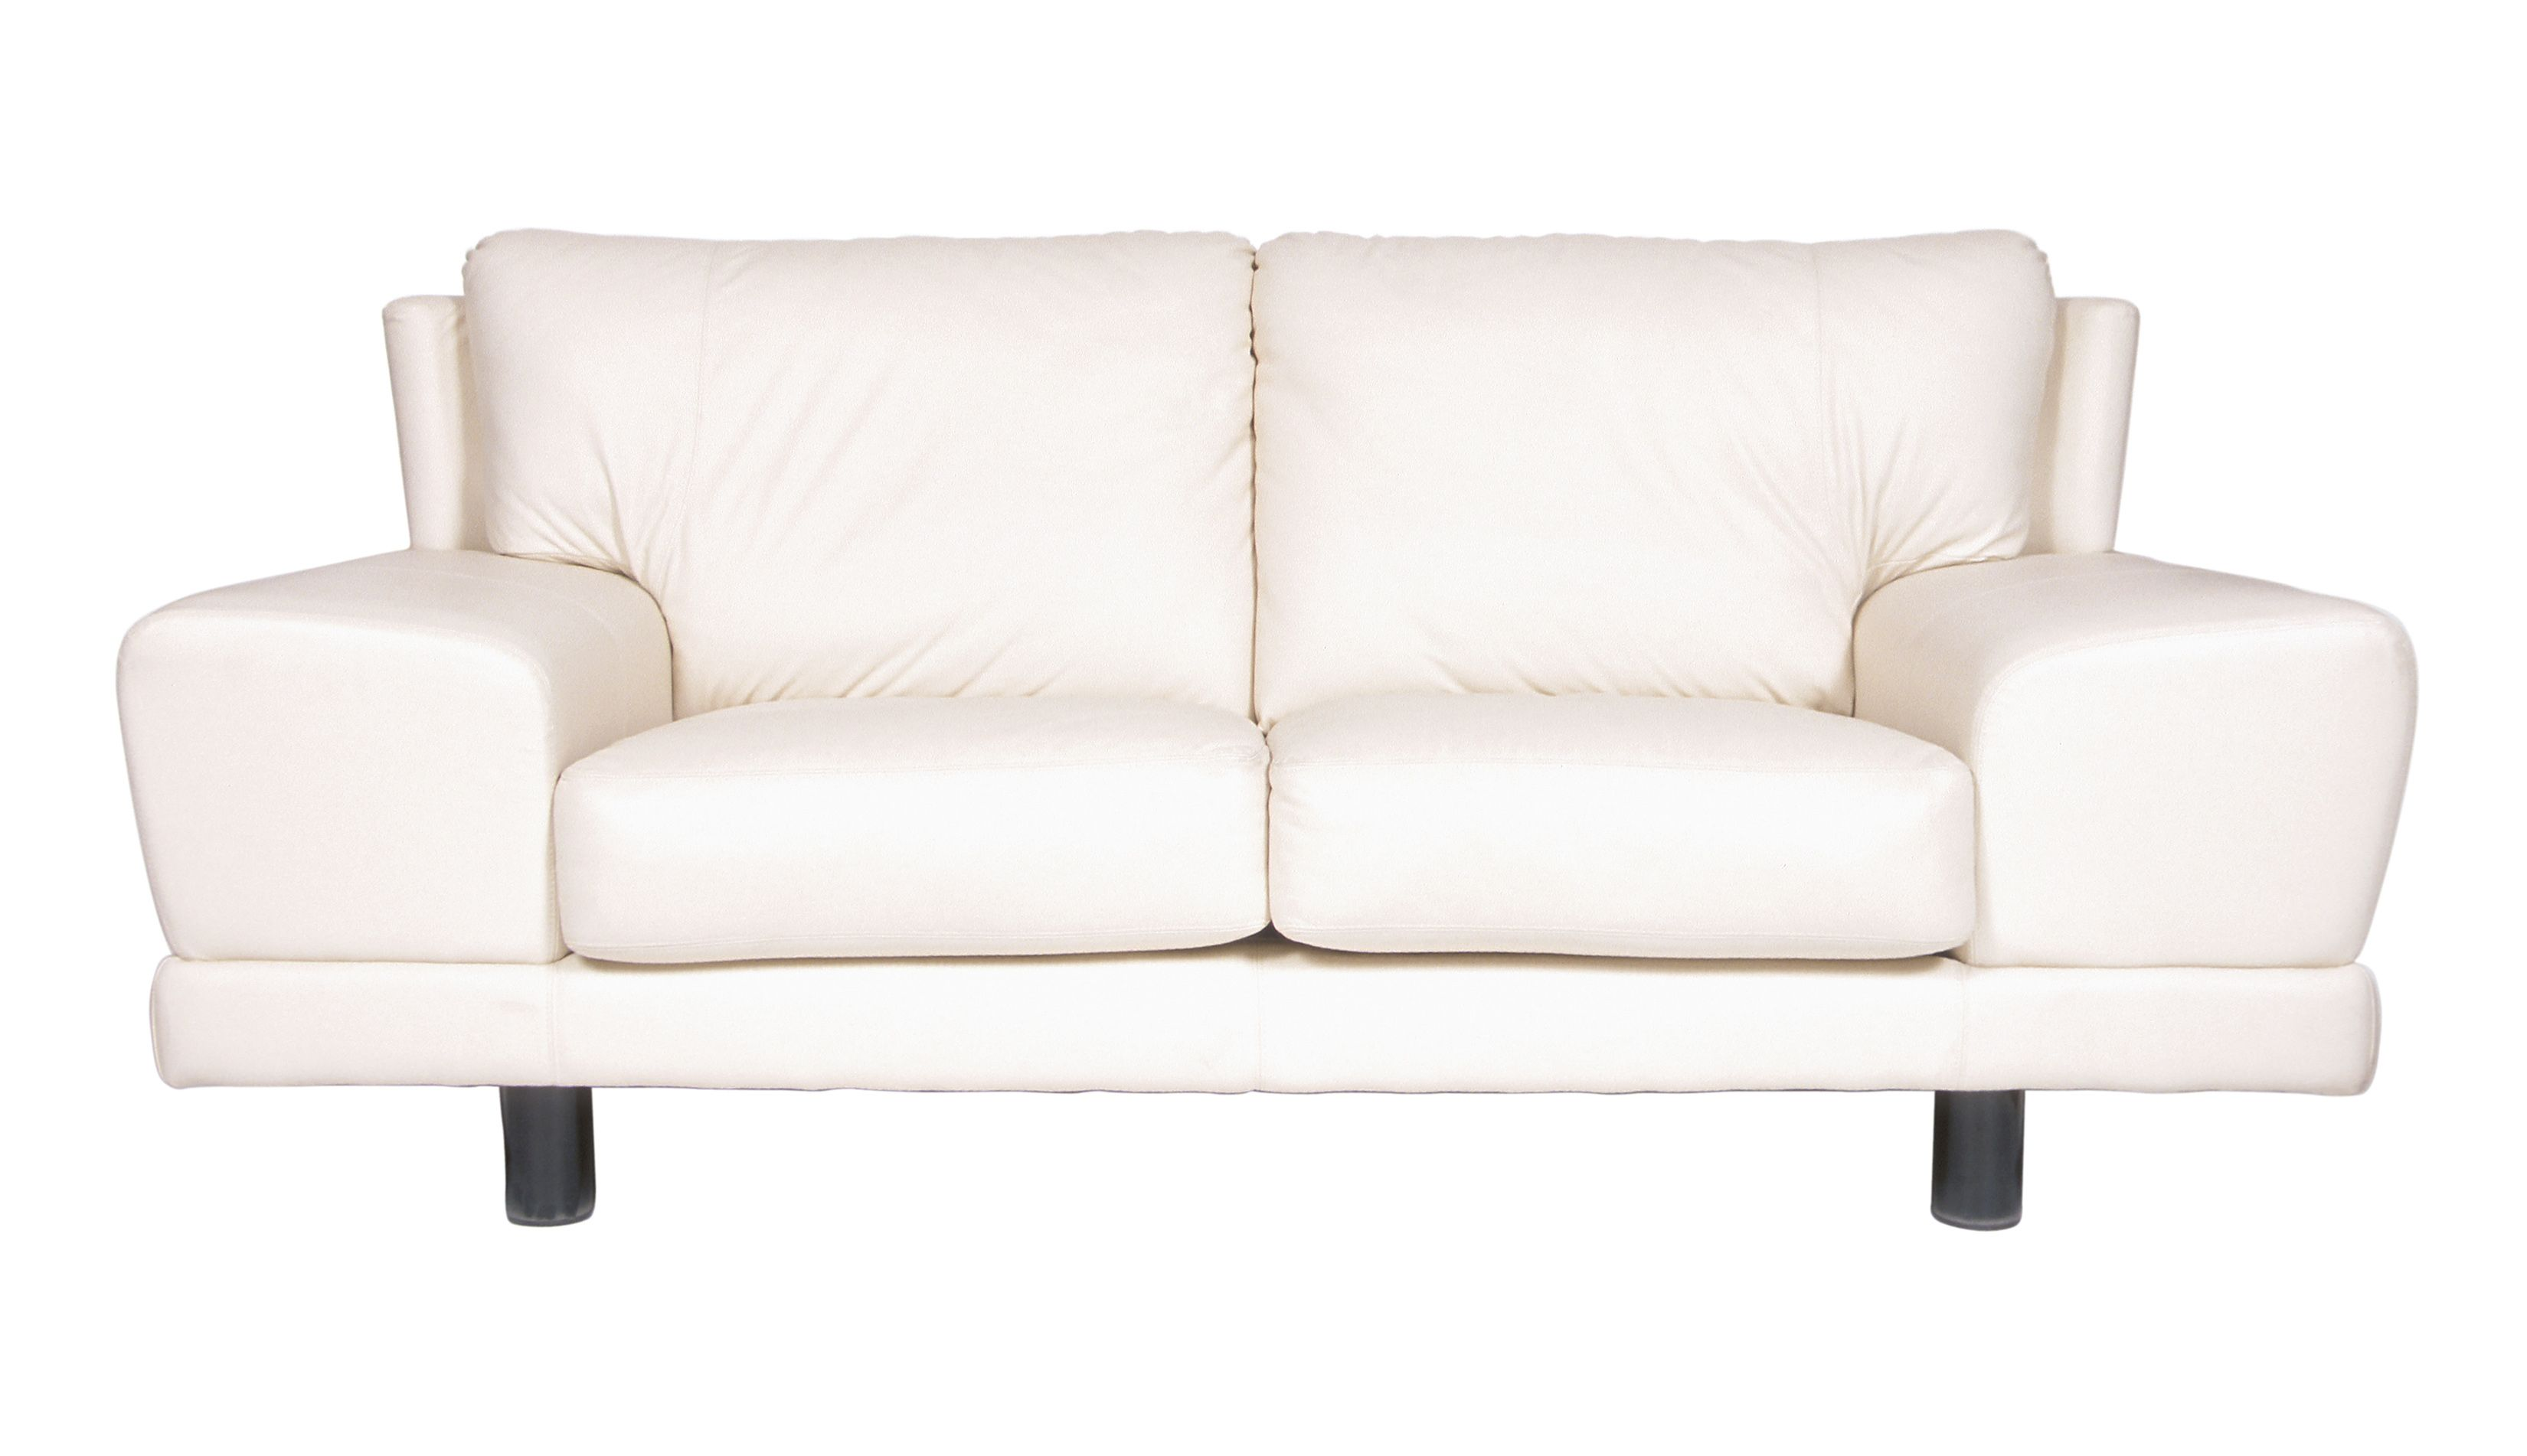 Can You Dye Or Paint A White Leather Couch Hunker